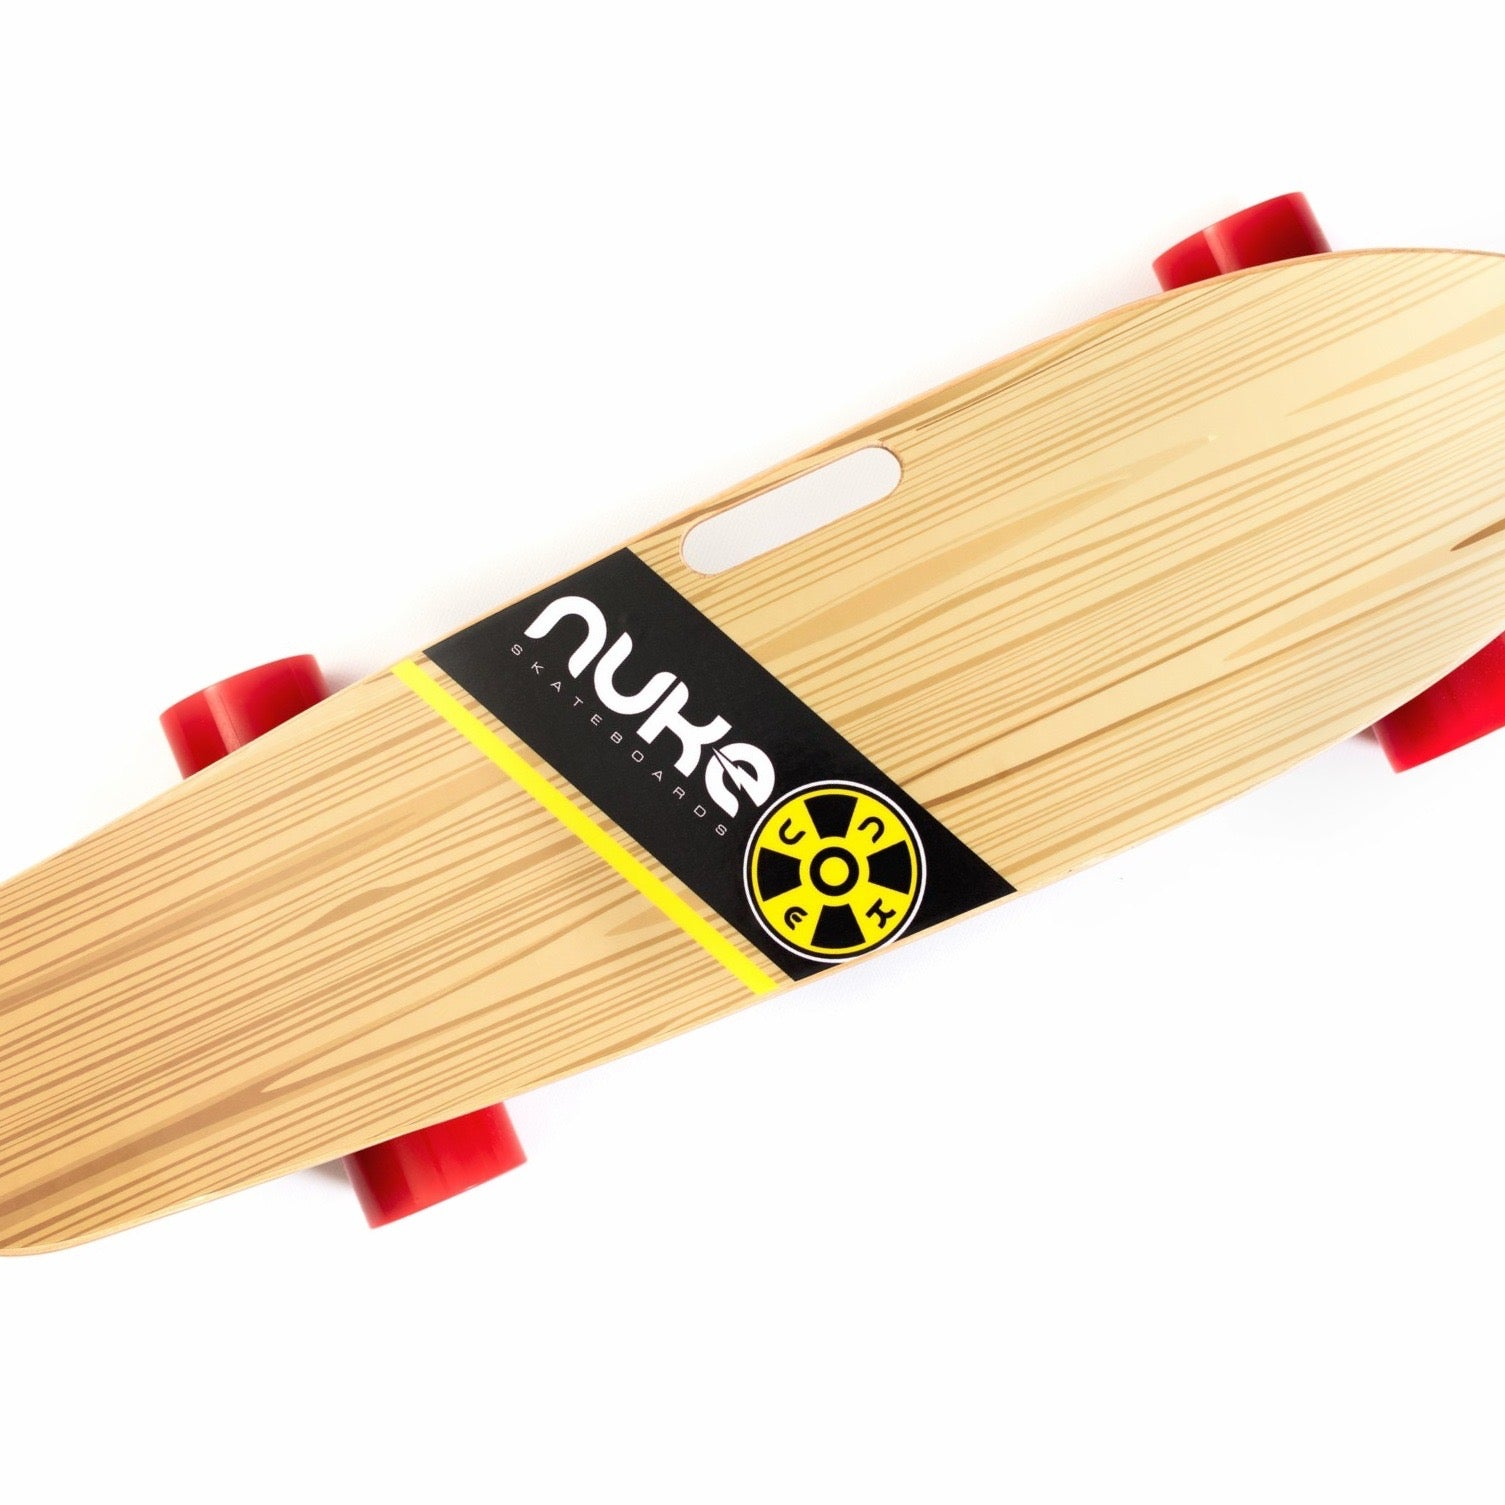 Lovely Nuke Wooden Electric Mini Cruiser Board – SK8ONE JJ75